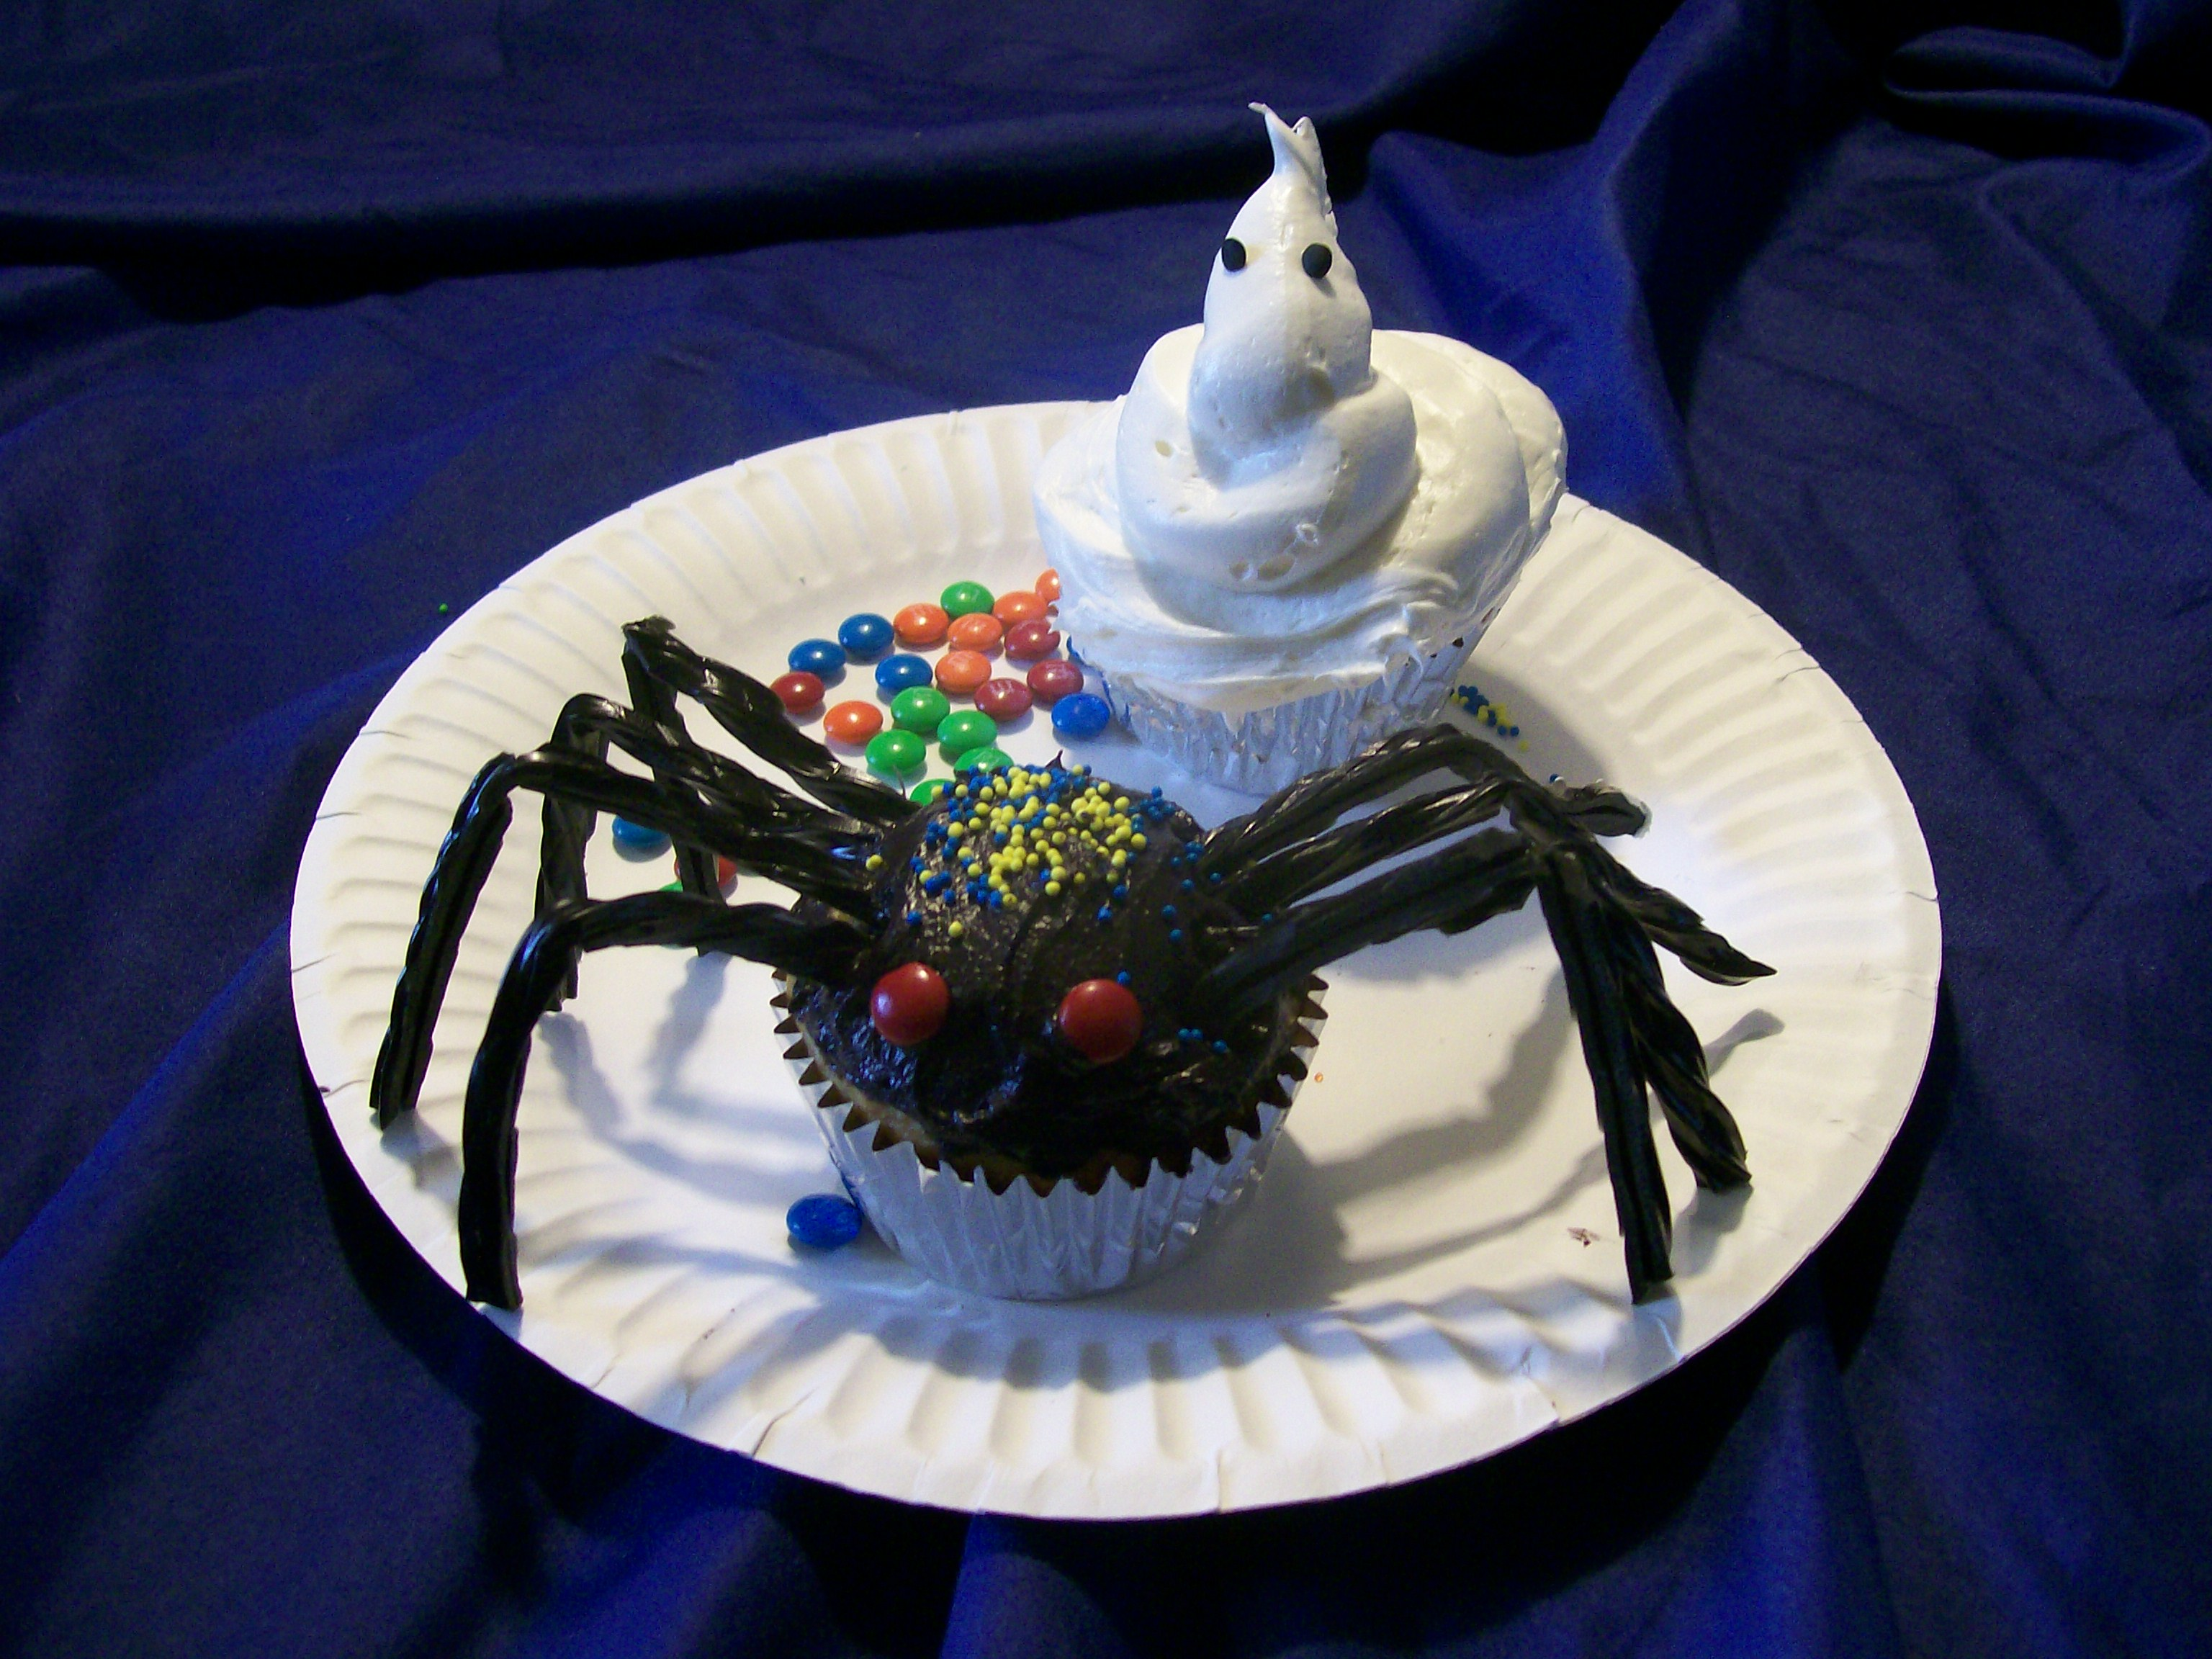 Spider and Ghost cupcakes